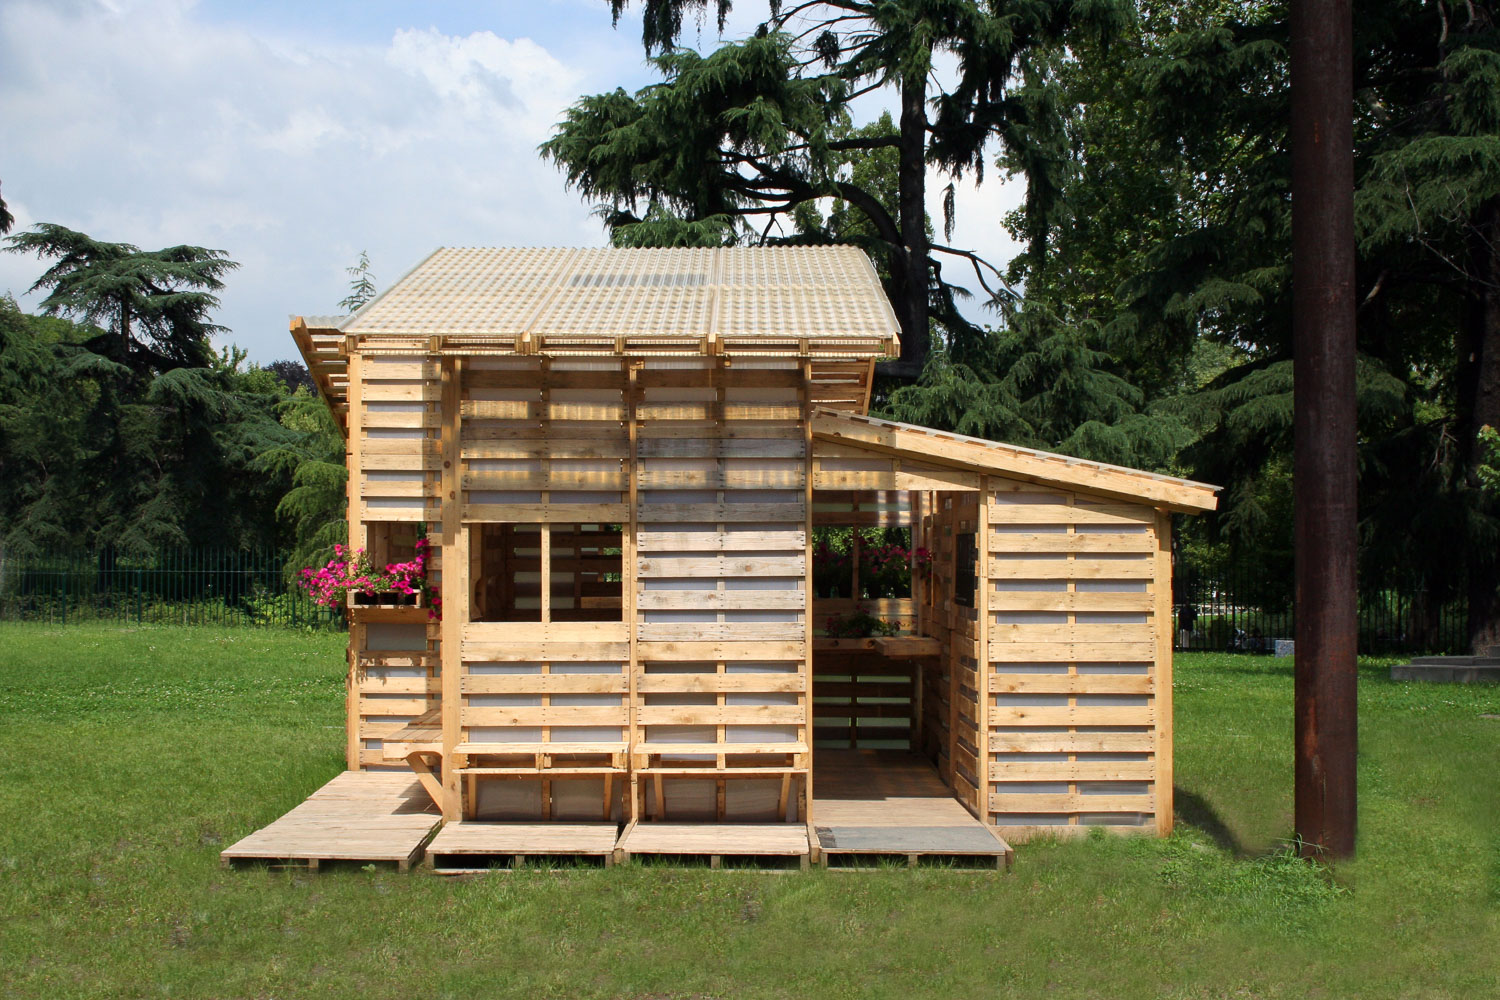 Pallet House from exterior entrance _ Milan photo by Gabriel Neri.jpg